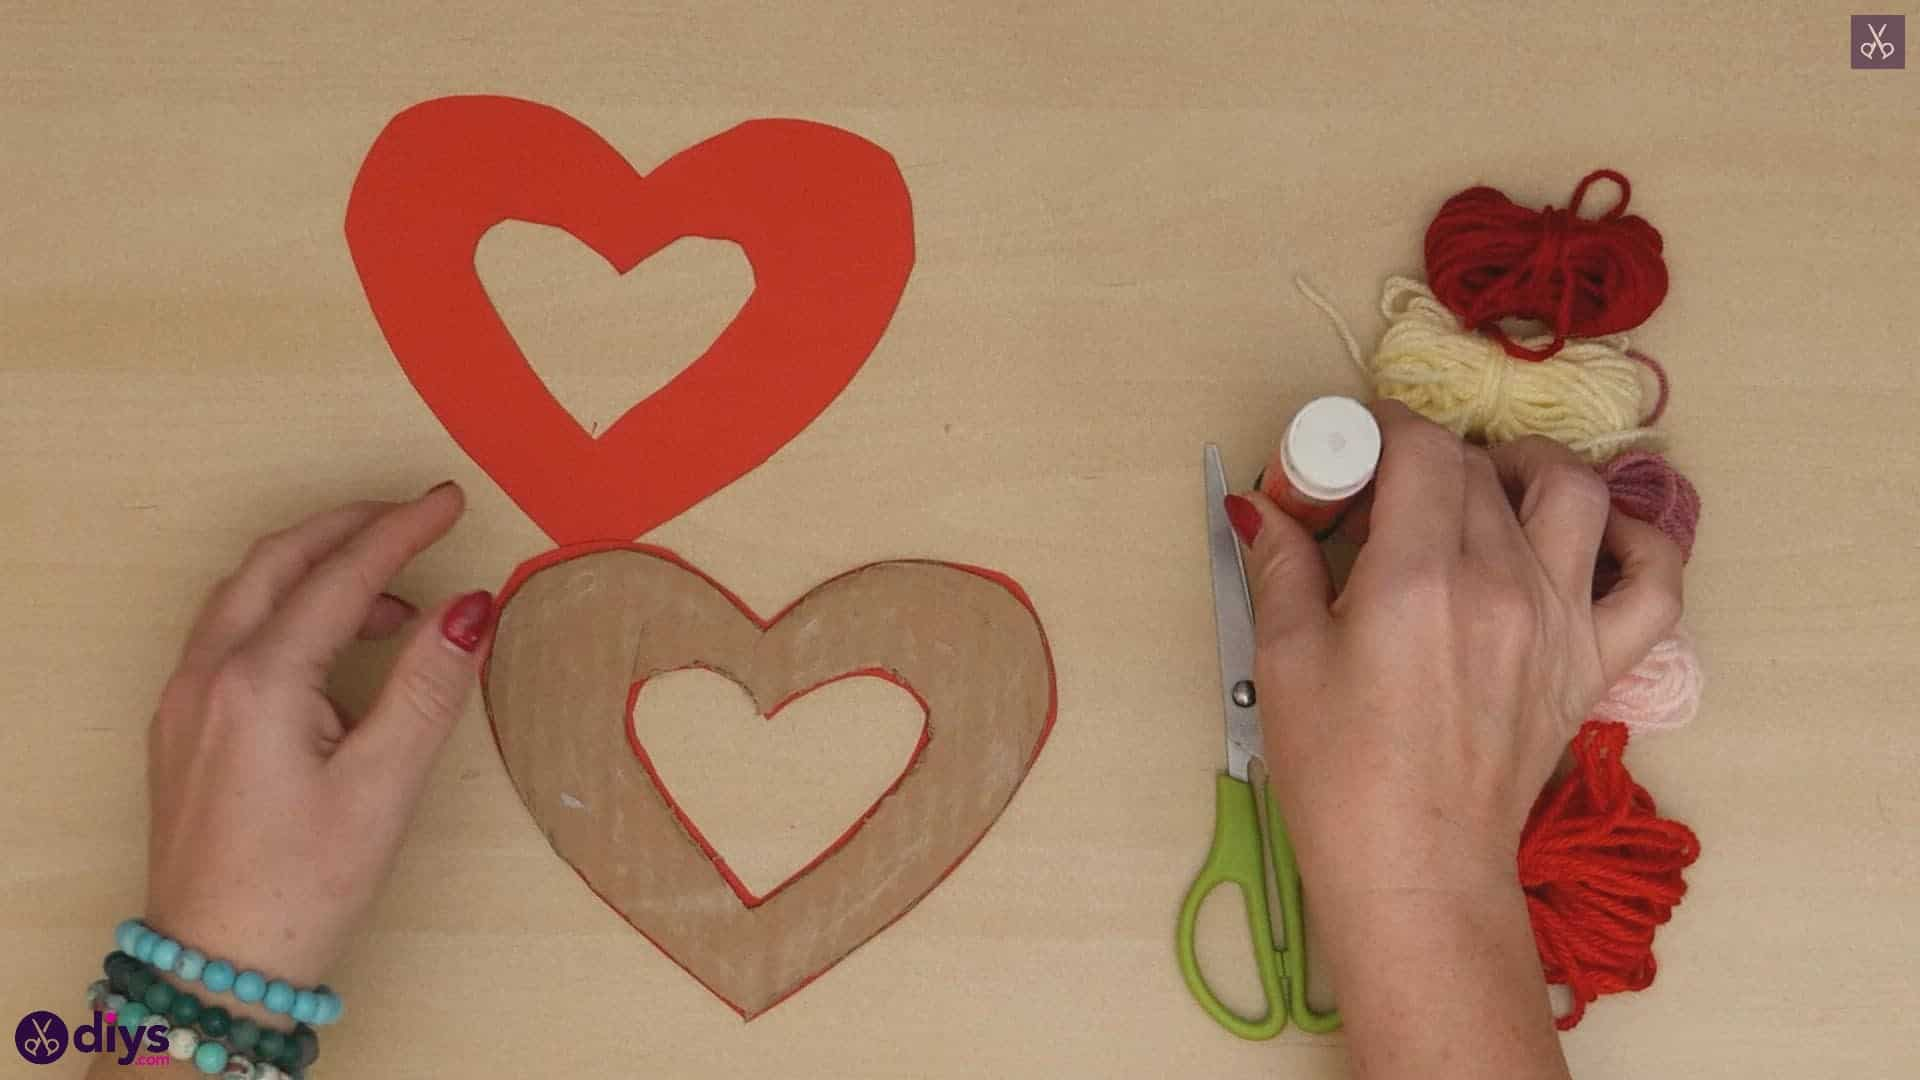 Diy yarn wrapped paper heart step 4a